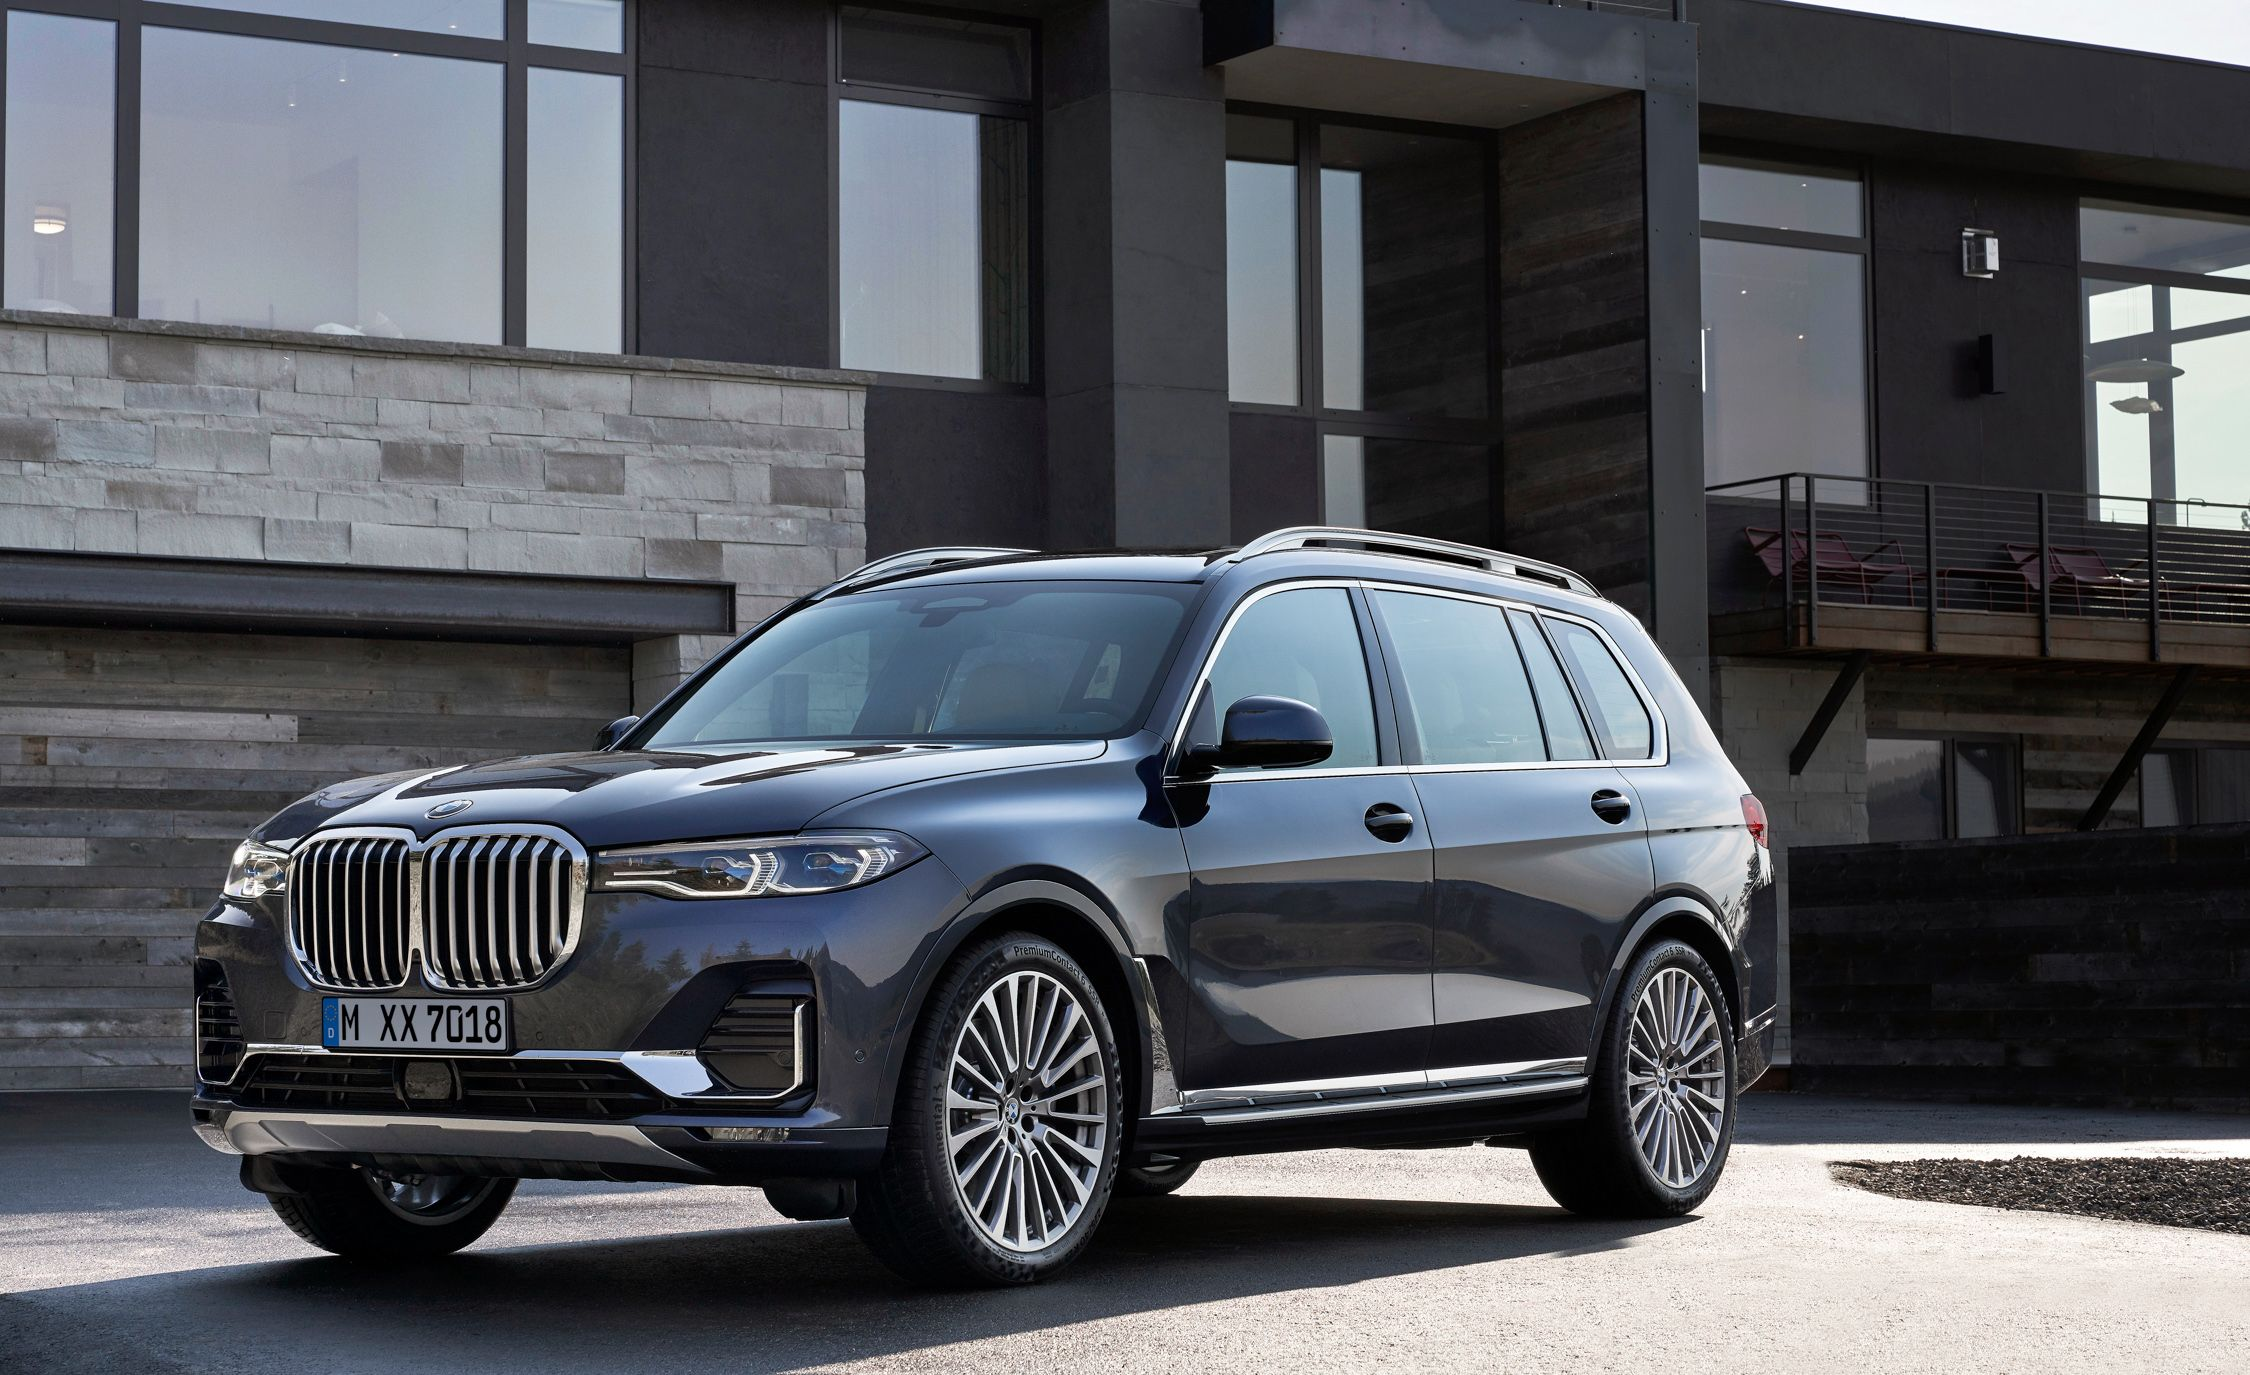 Interieur X6 Bmw 2020 Bmw X7 Reviews Bmw X7 Price Photos And Specs Car And Driver